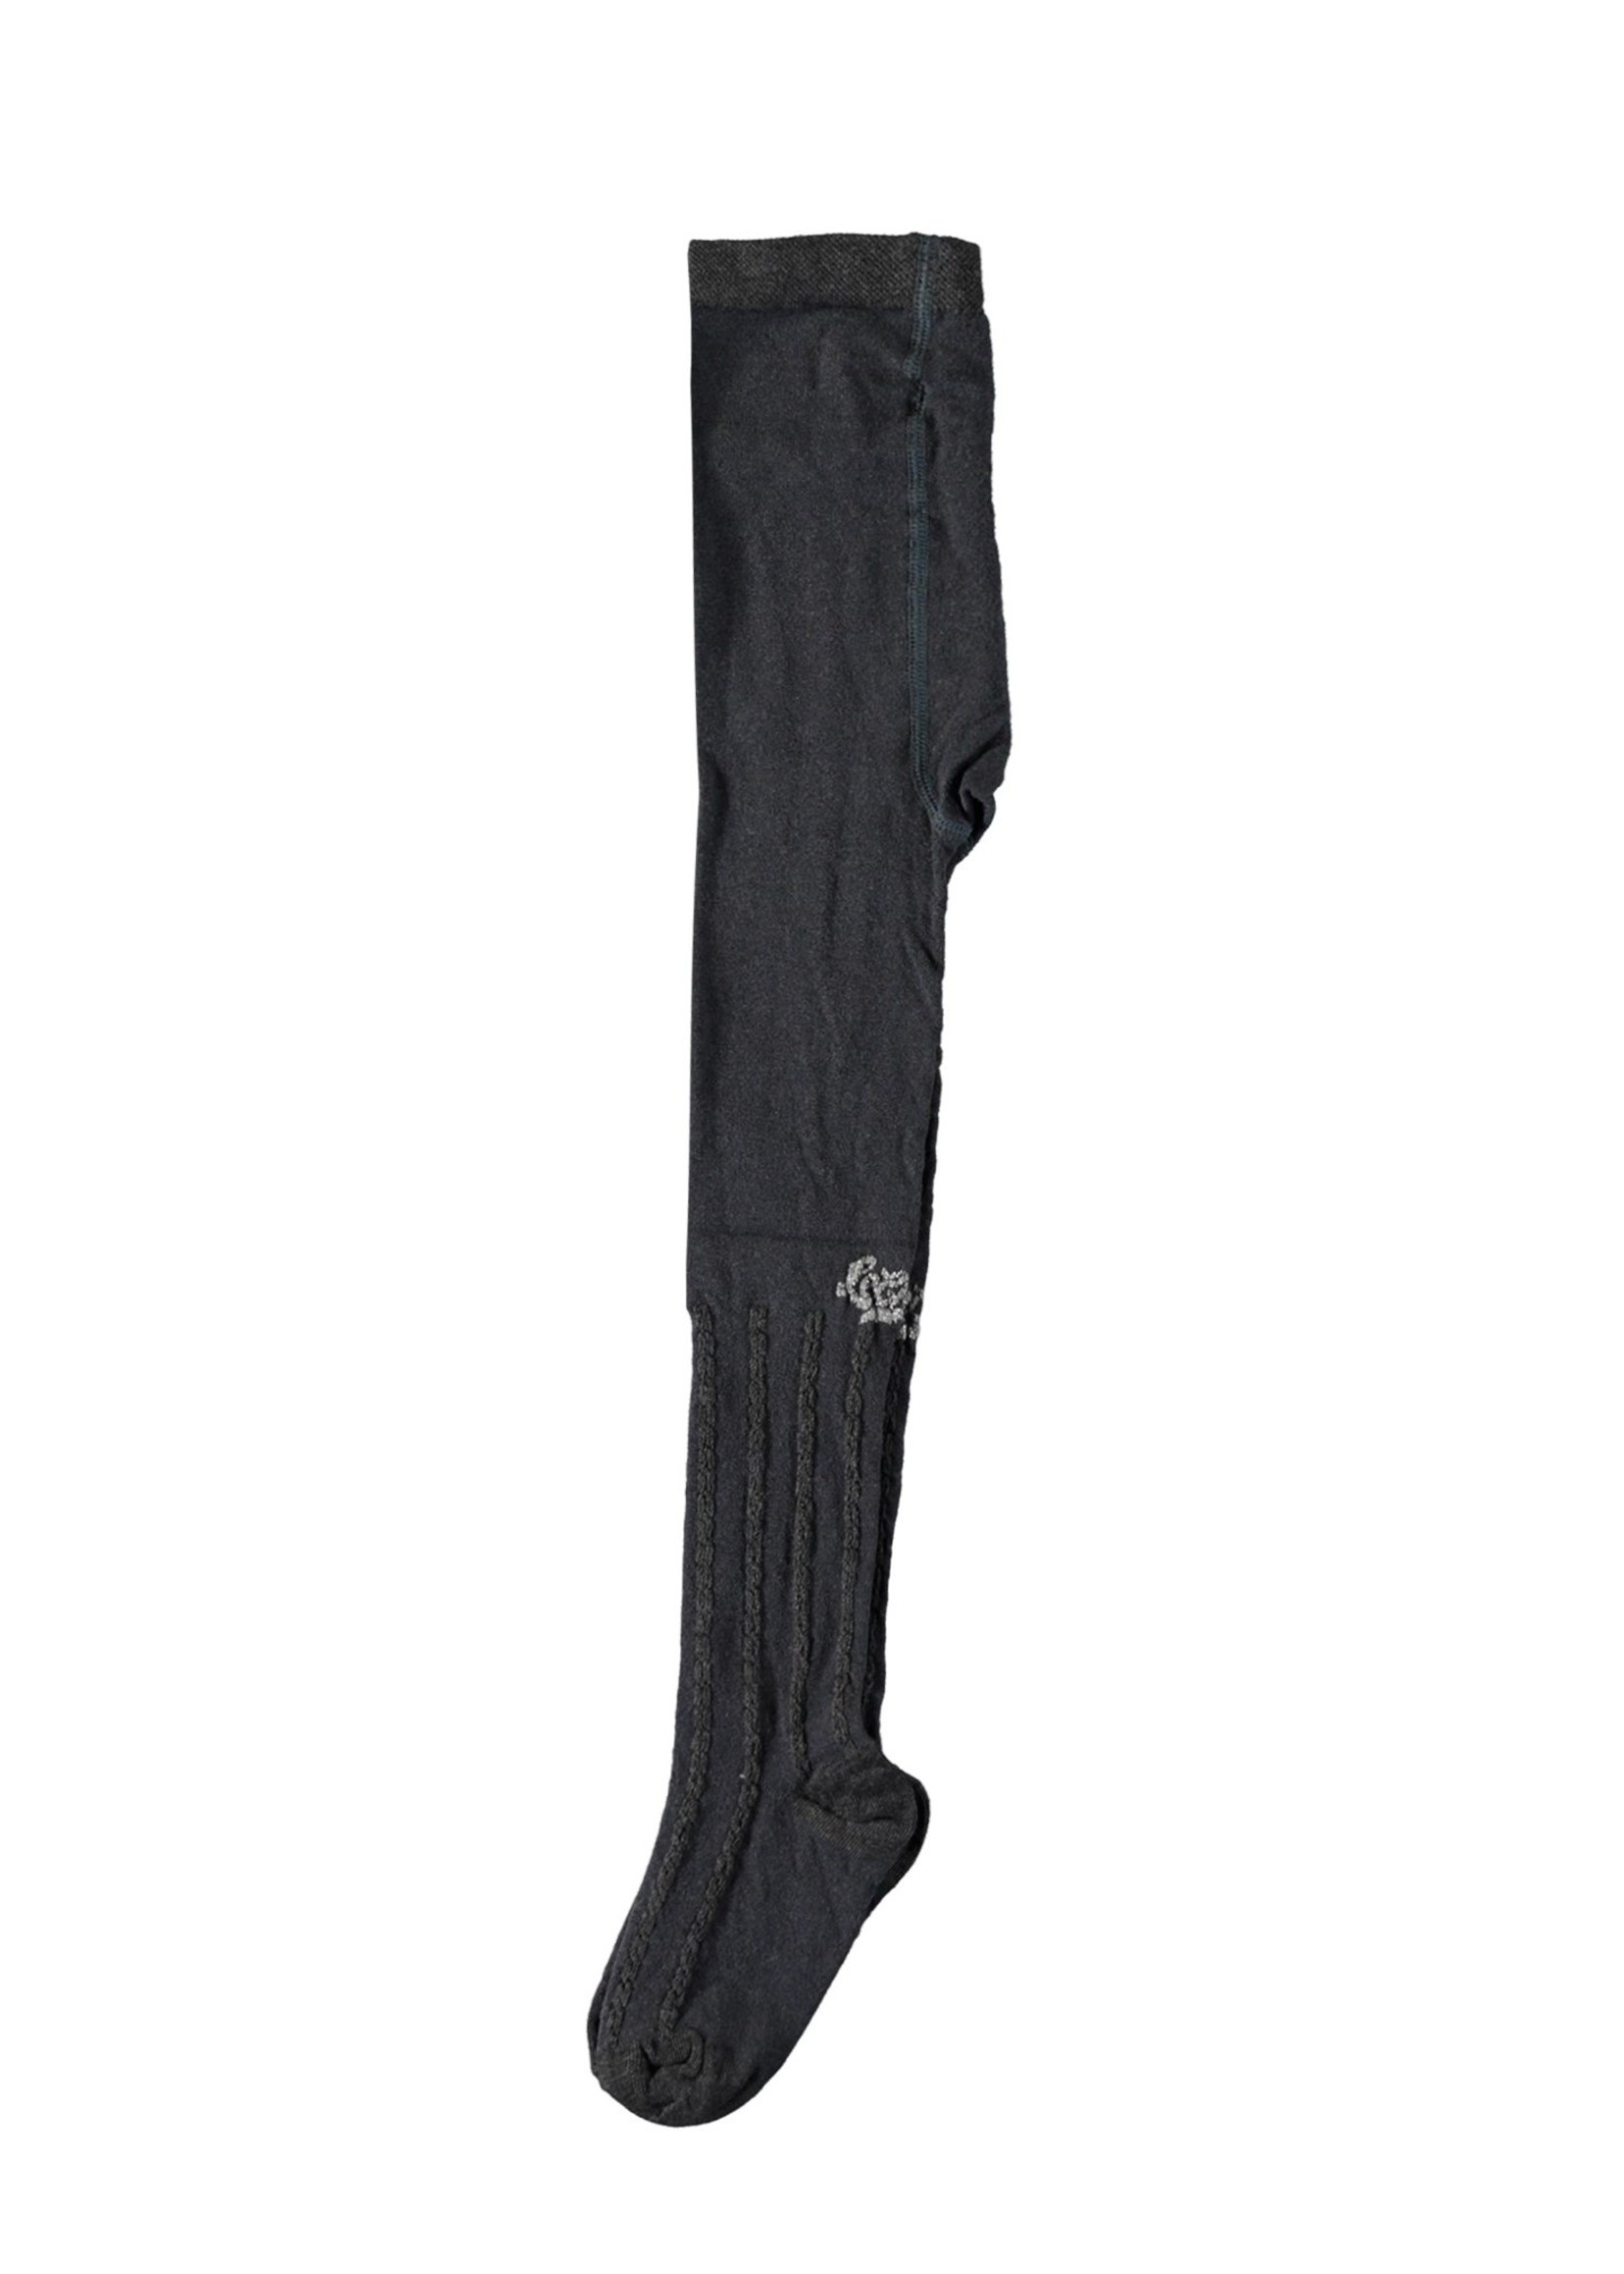 Le Chic LE CHIC Tights cable knit anthracite